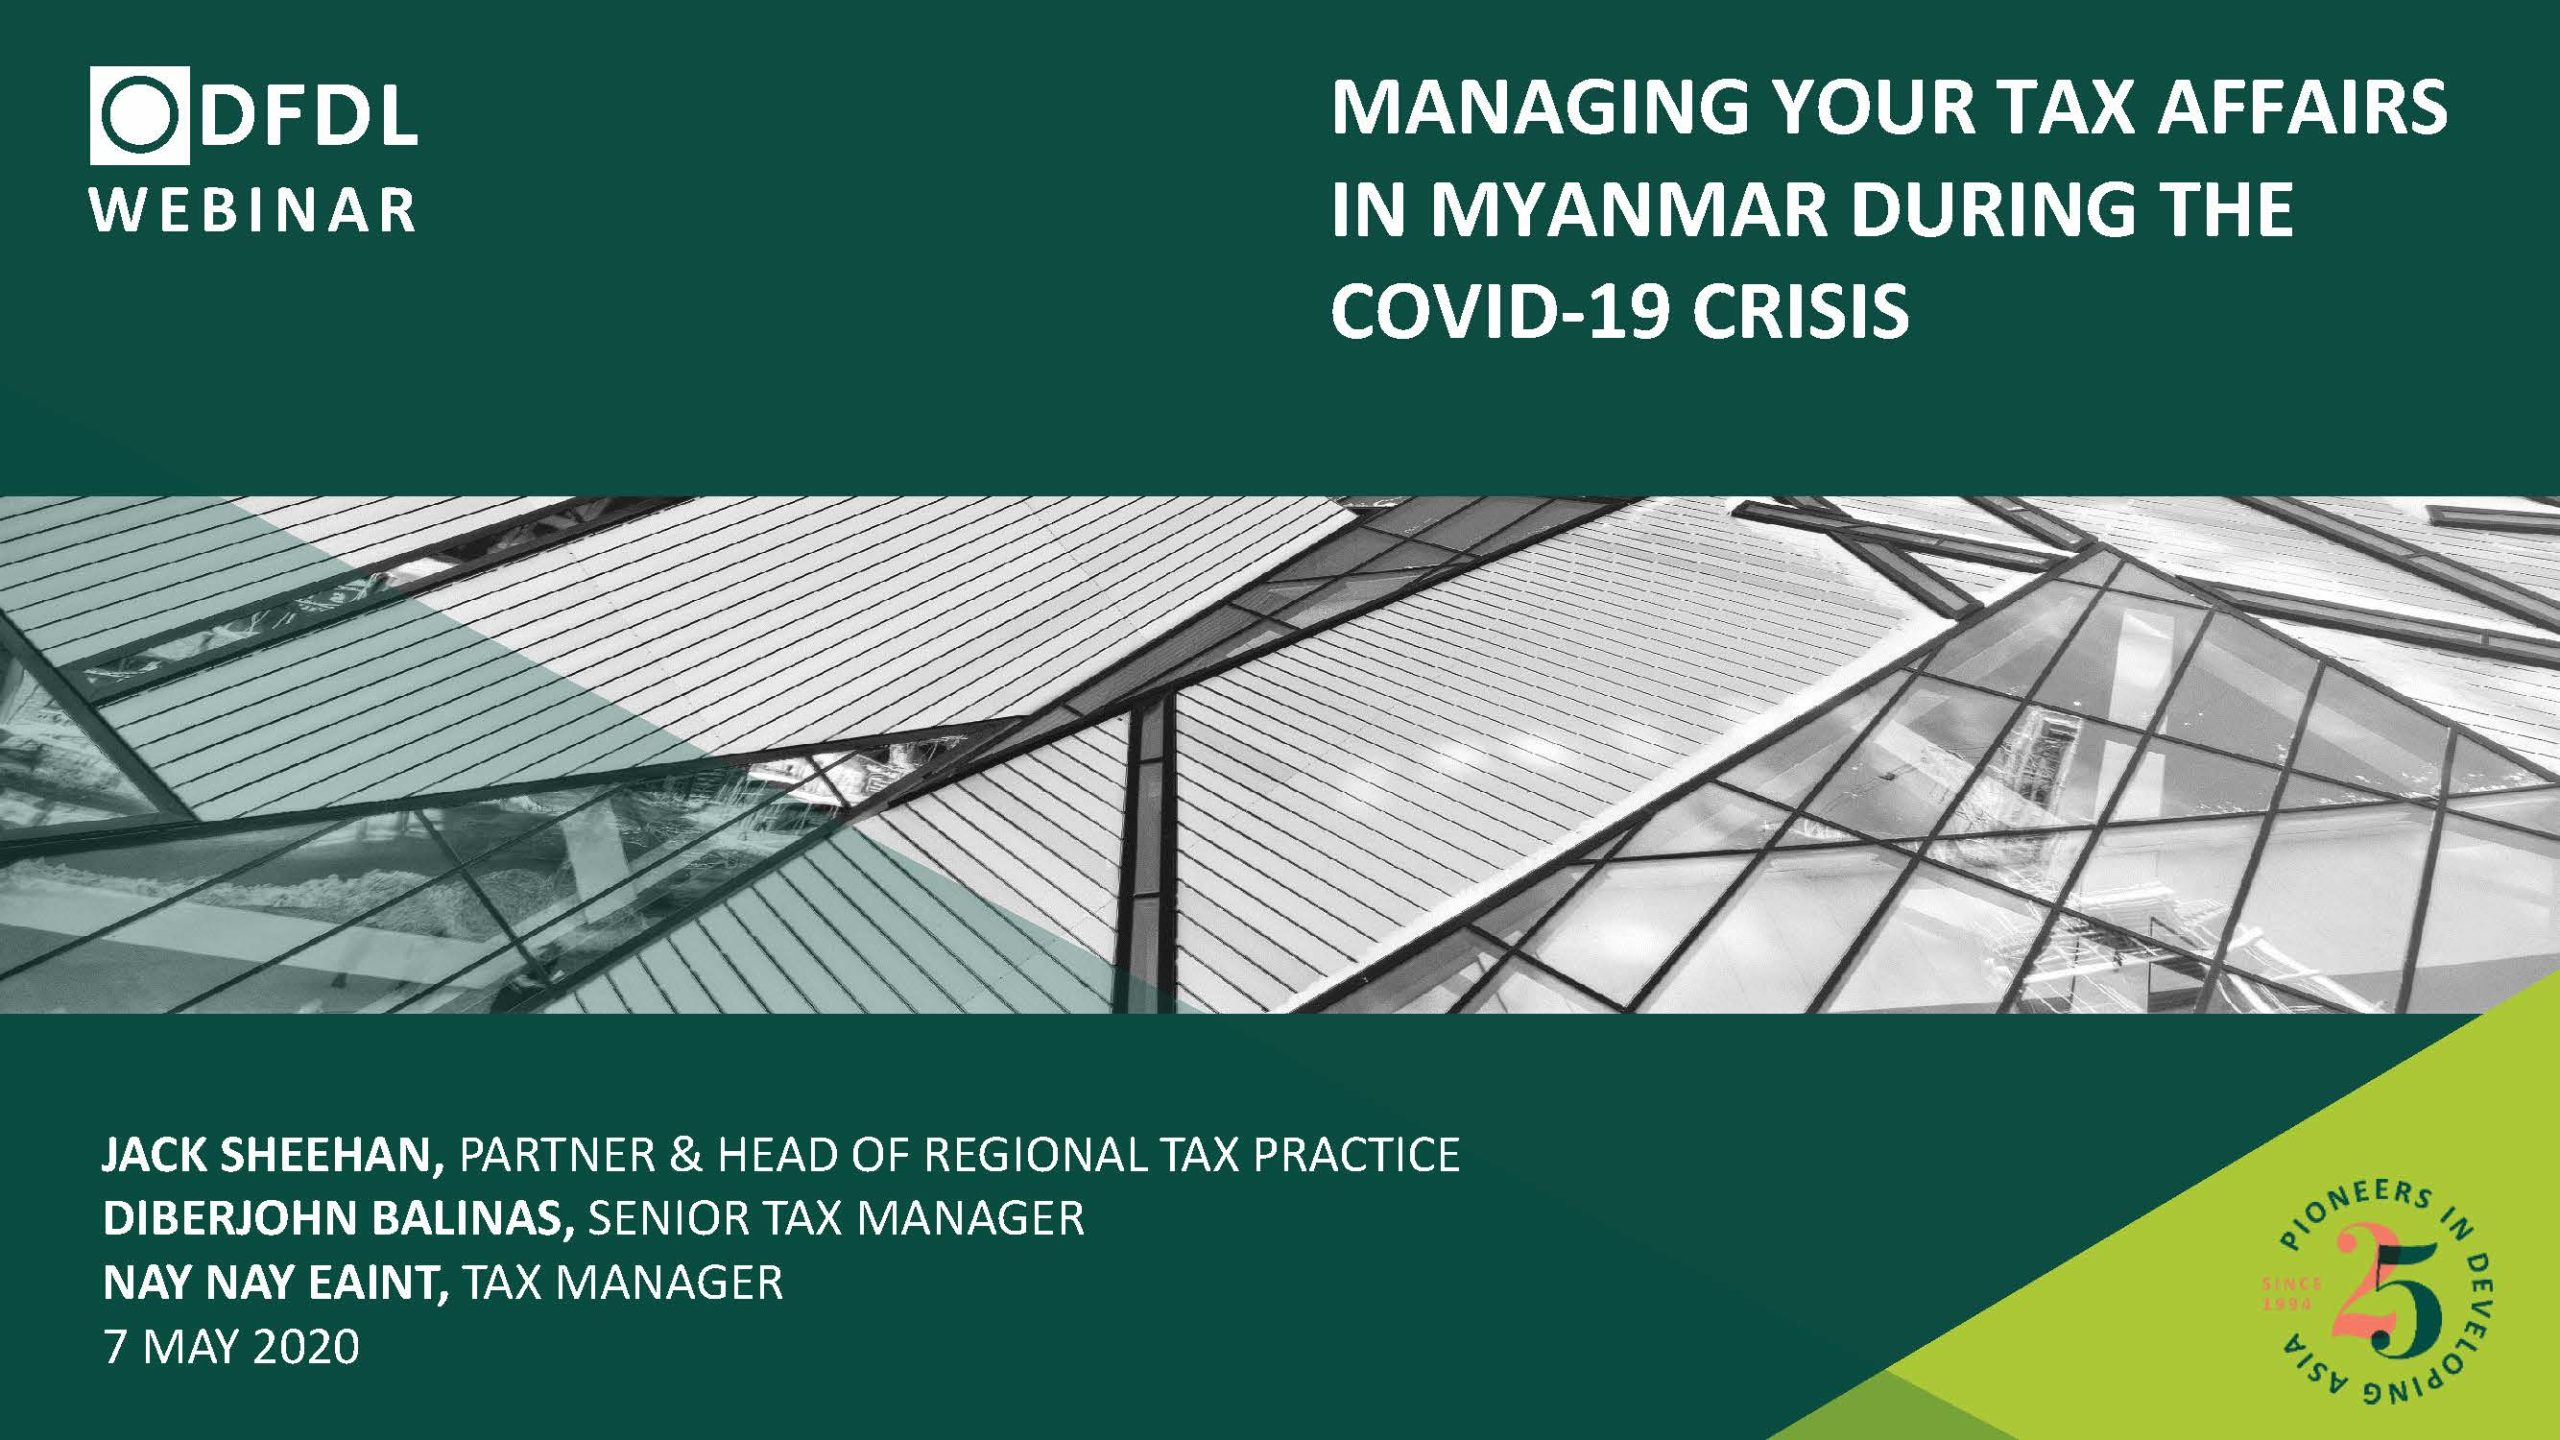 Managing Your Tax Affairs in Myanmar During the COVID-19 Crisis